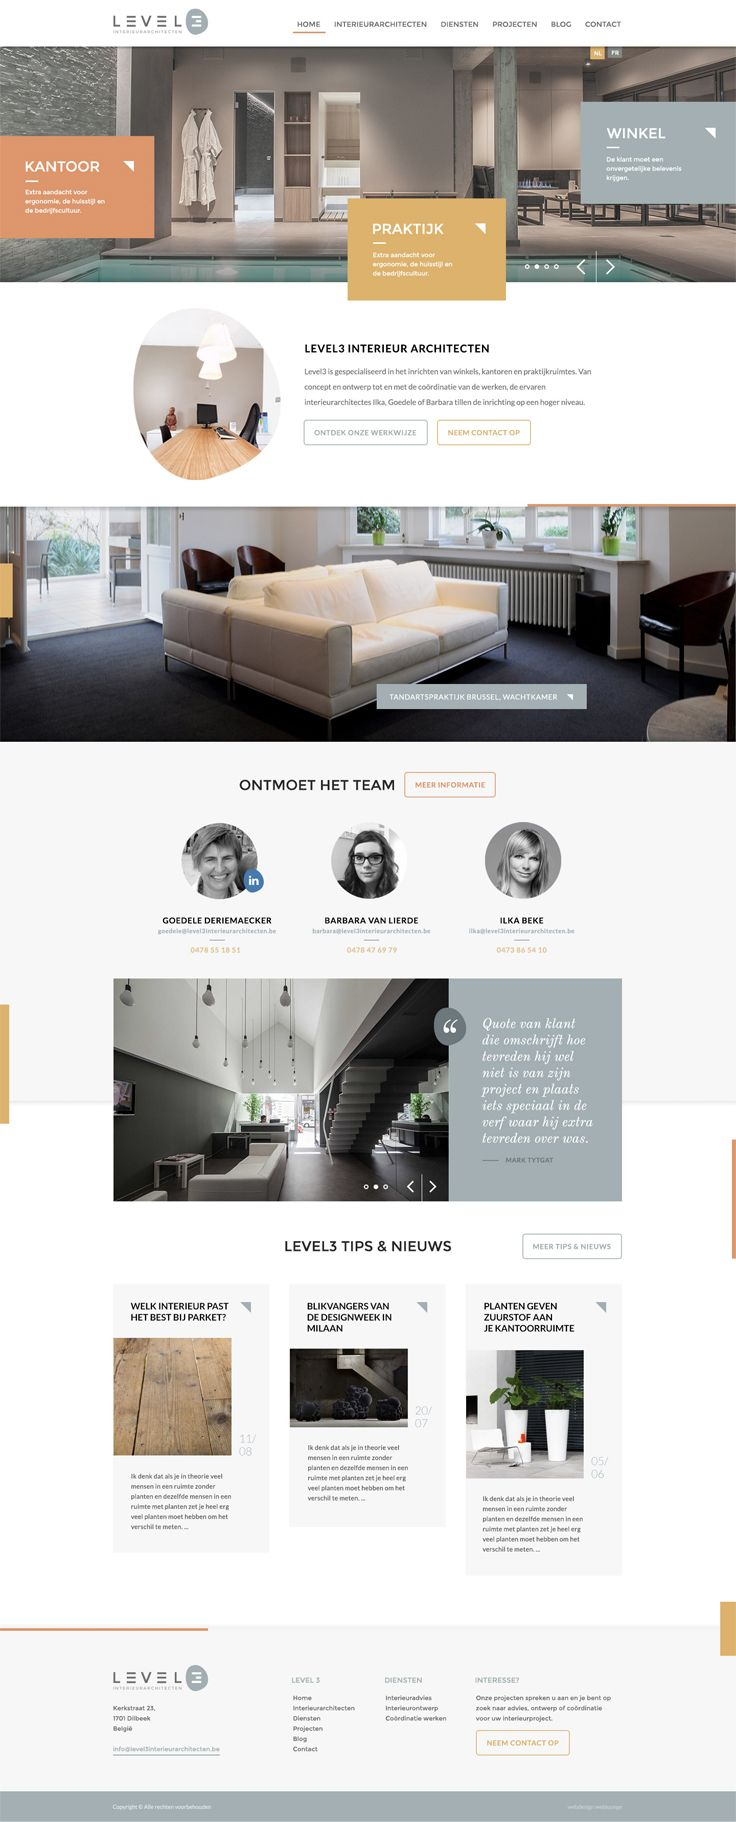 Website for Level3 interior architects - Designed by Weblounge…